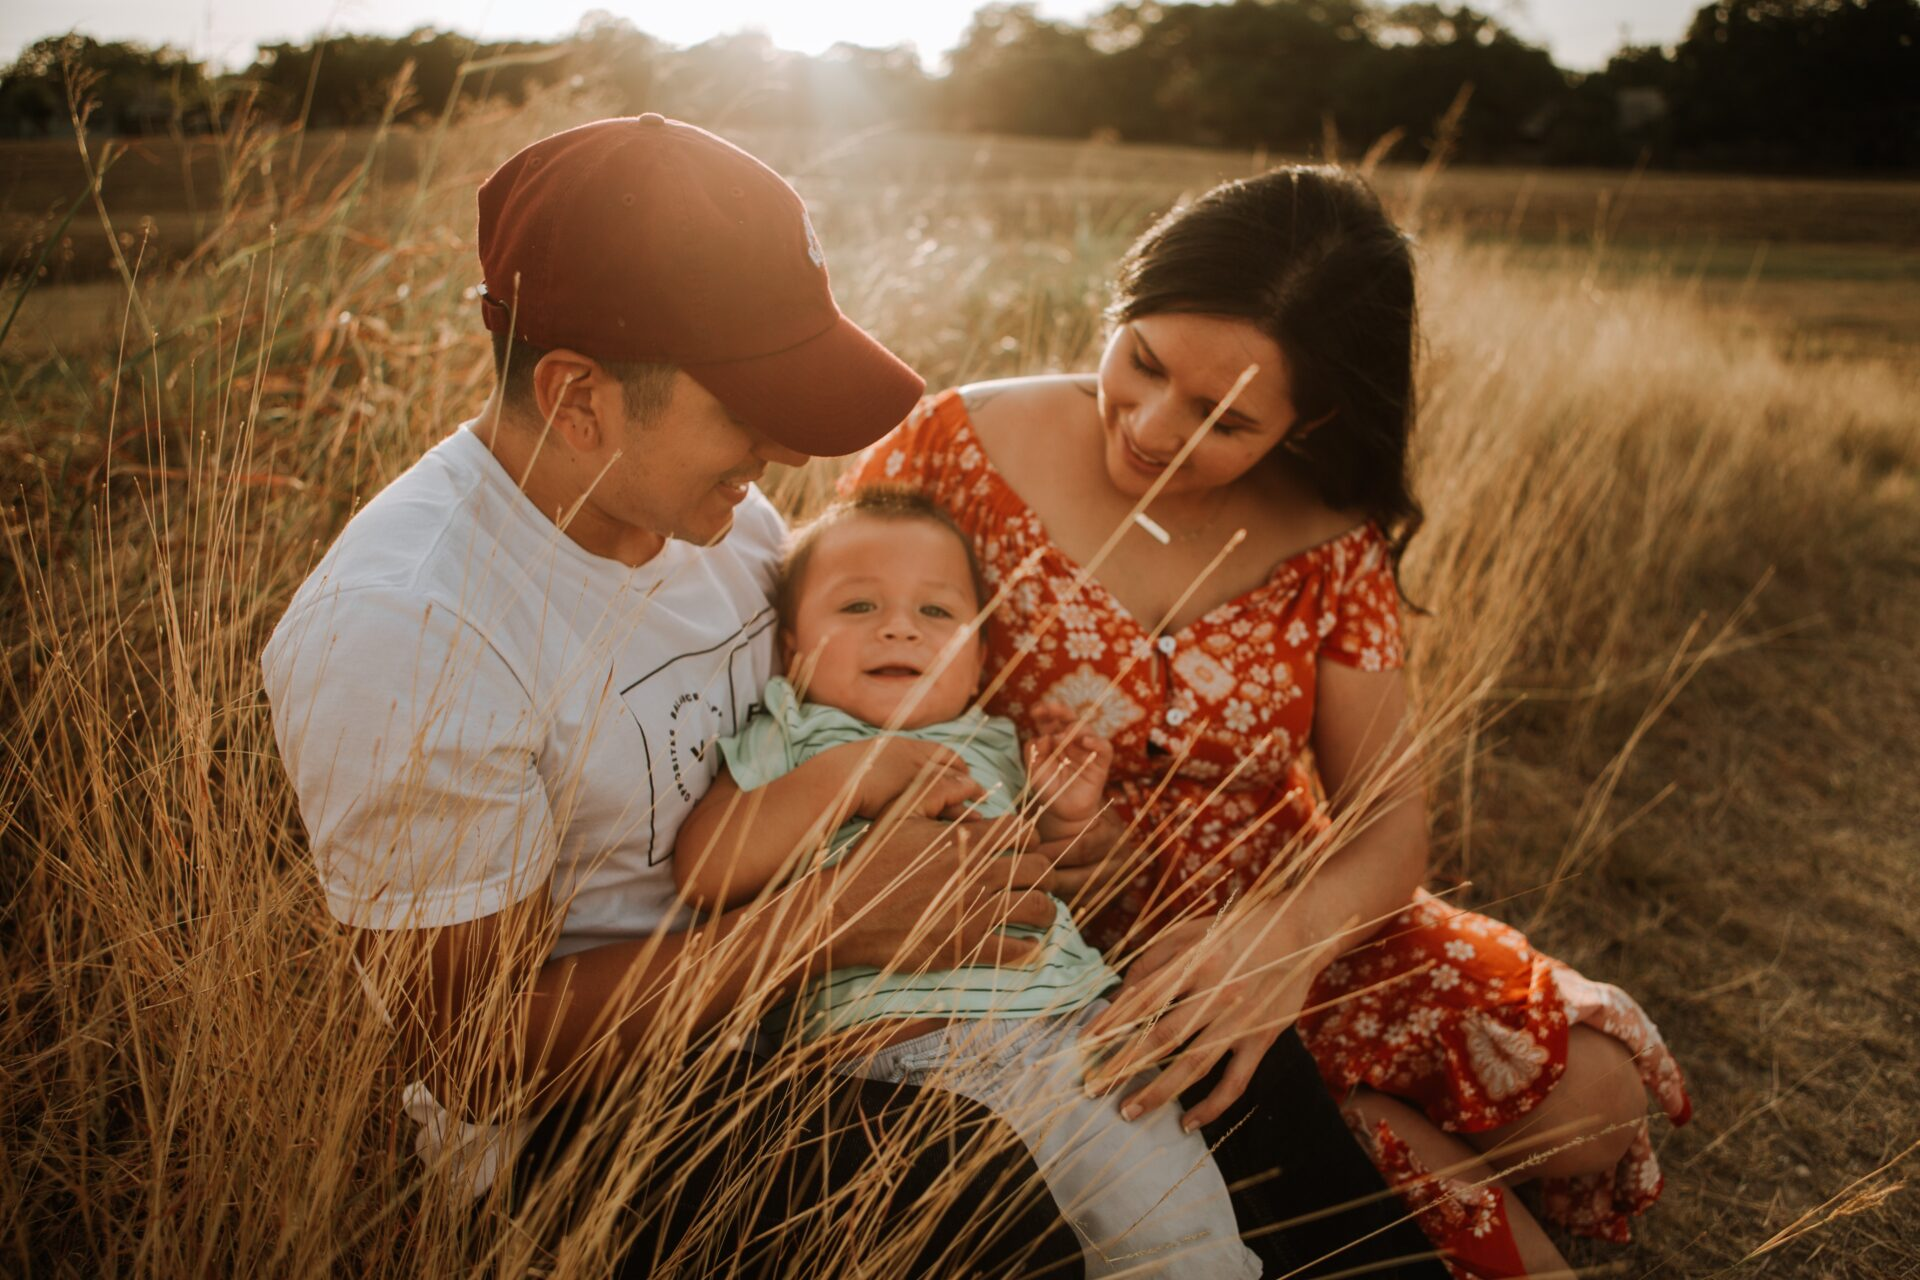 US immigration helped this happy family in long grass at sunset.